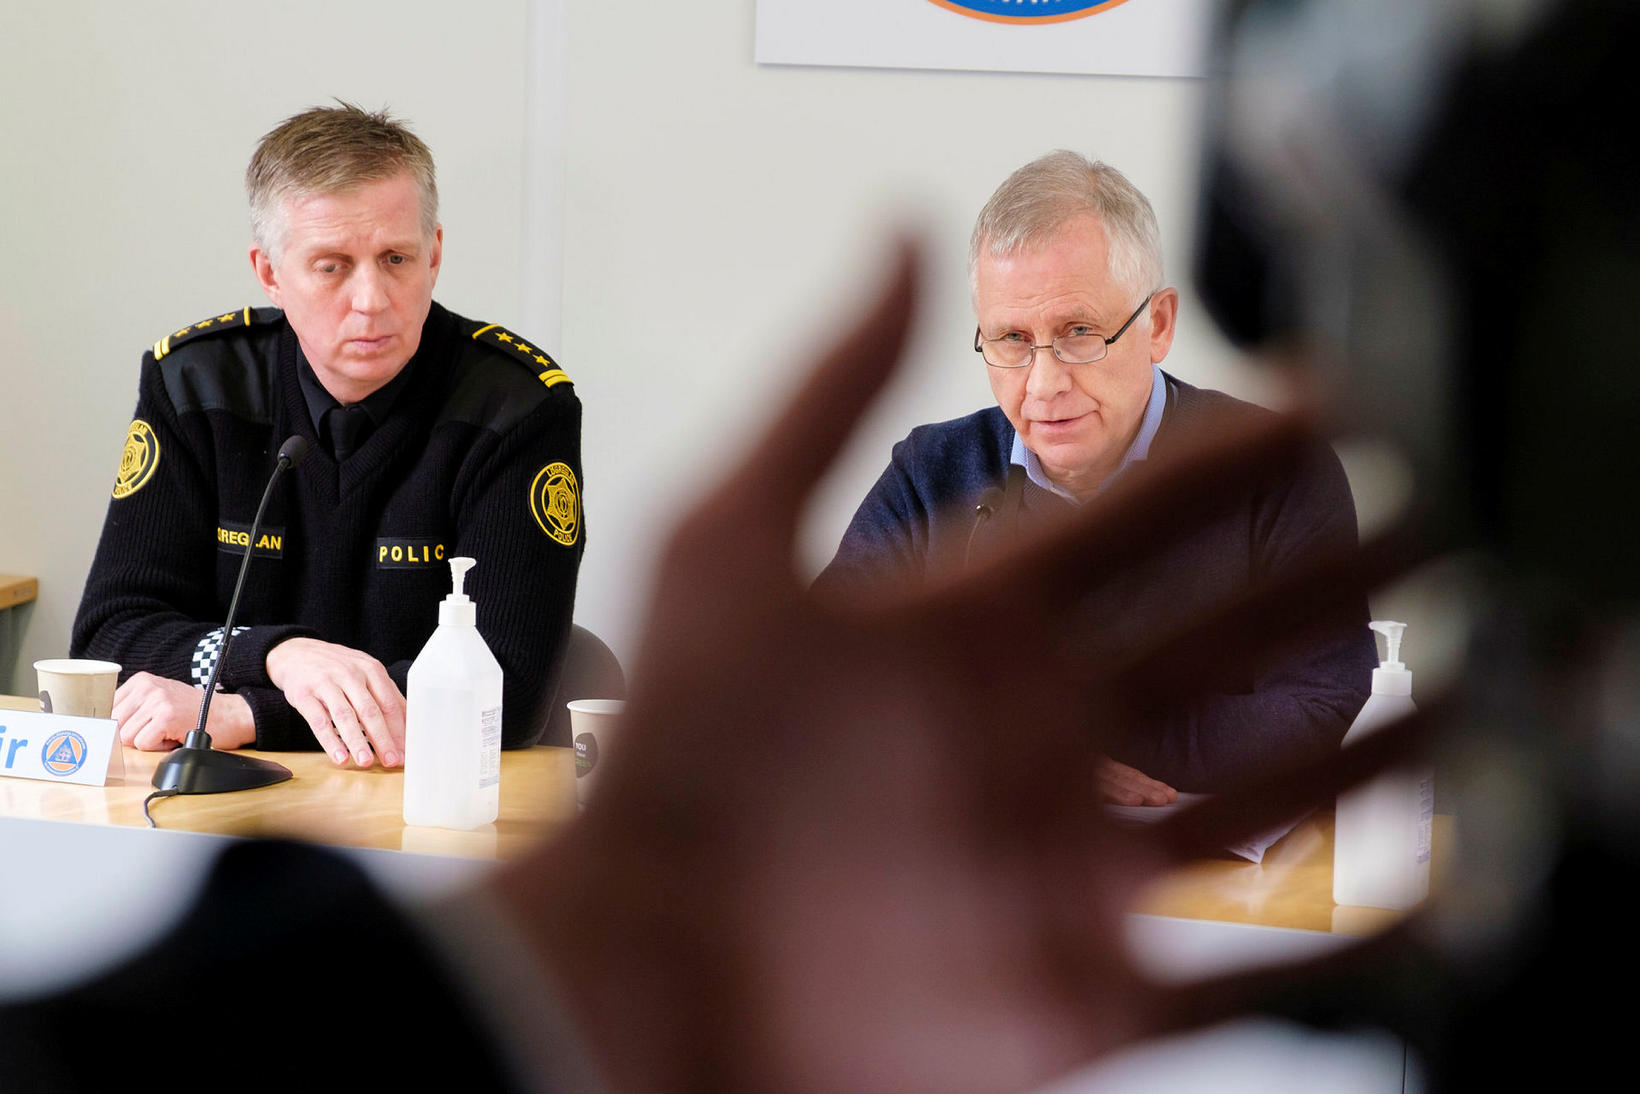 Chief Superintendent Víðir Reynisson is on the left.